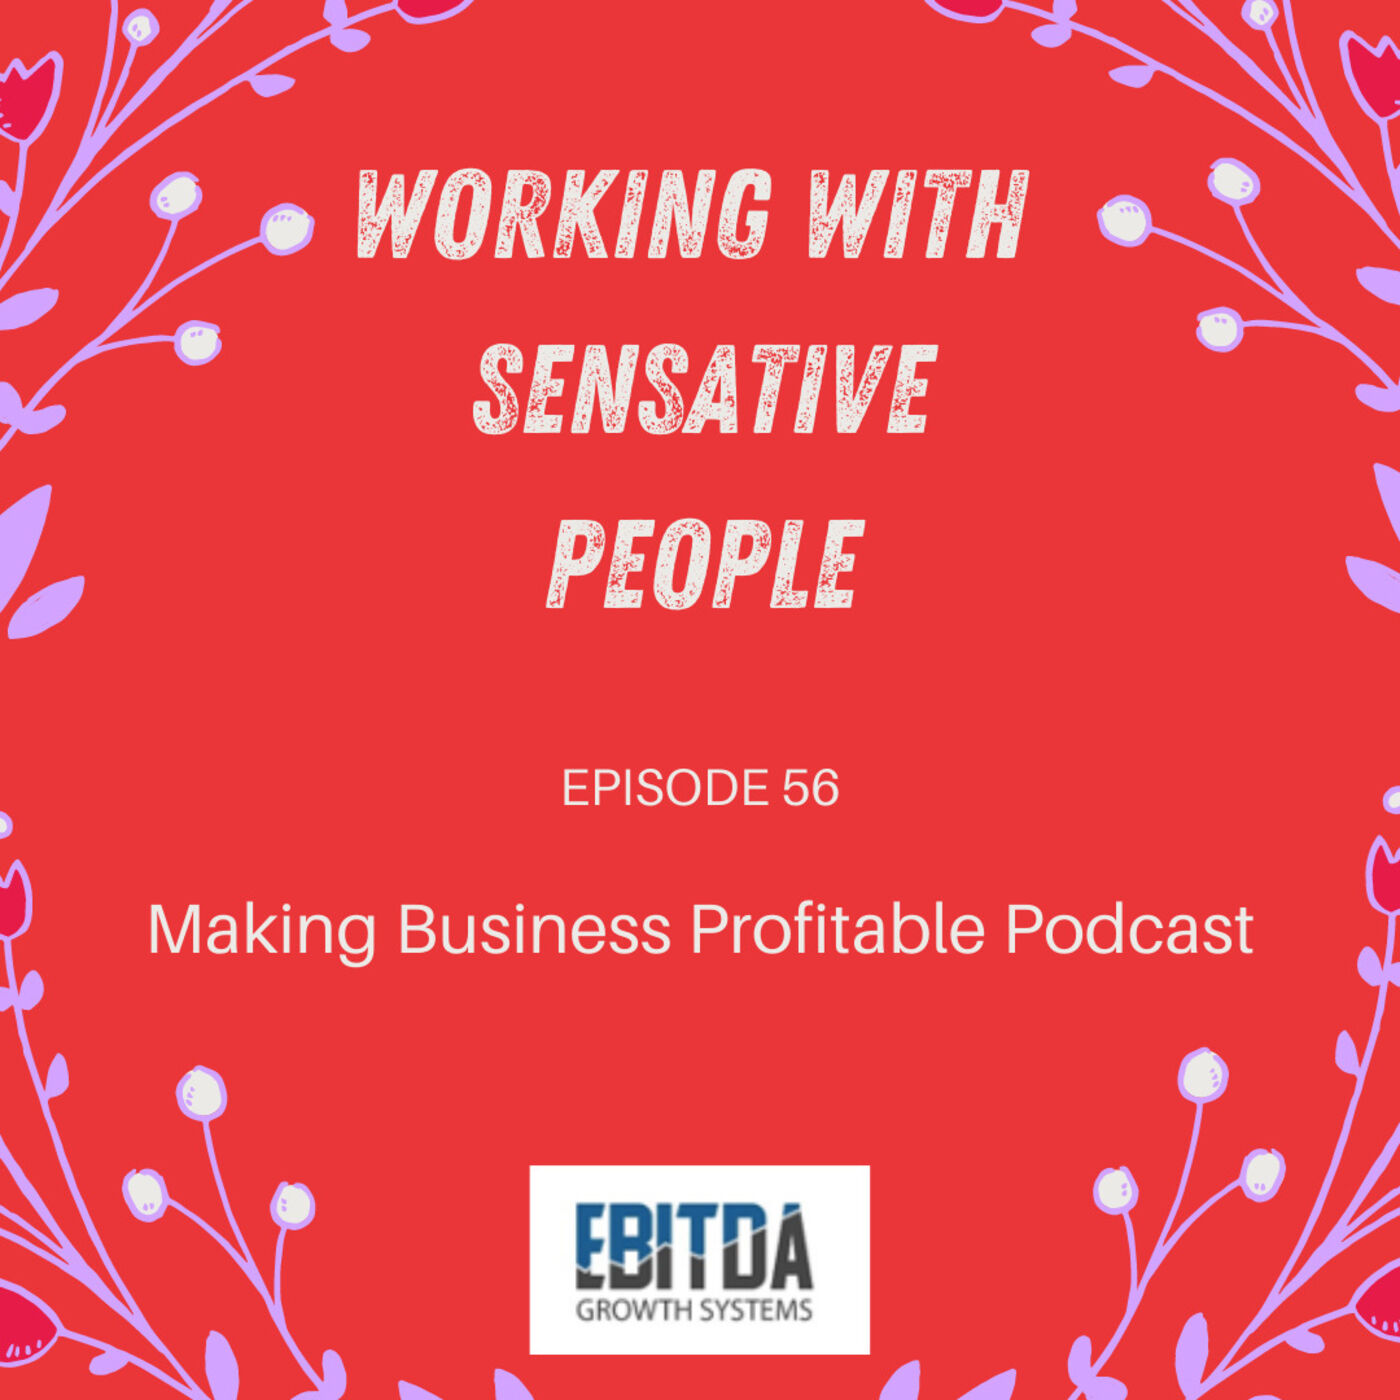 Episode 56 - Working with Sensitive People